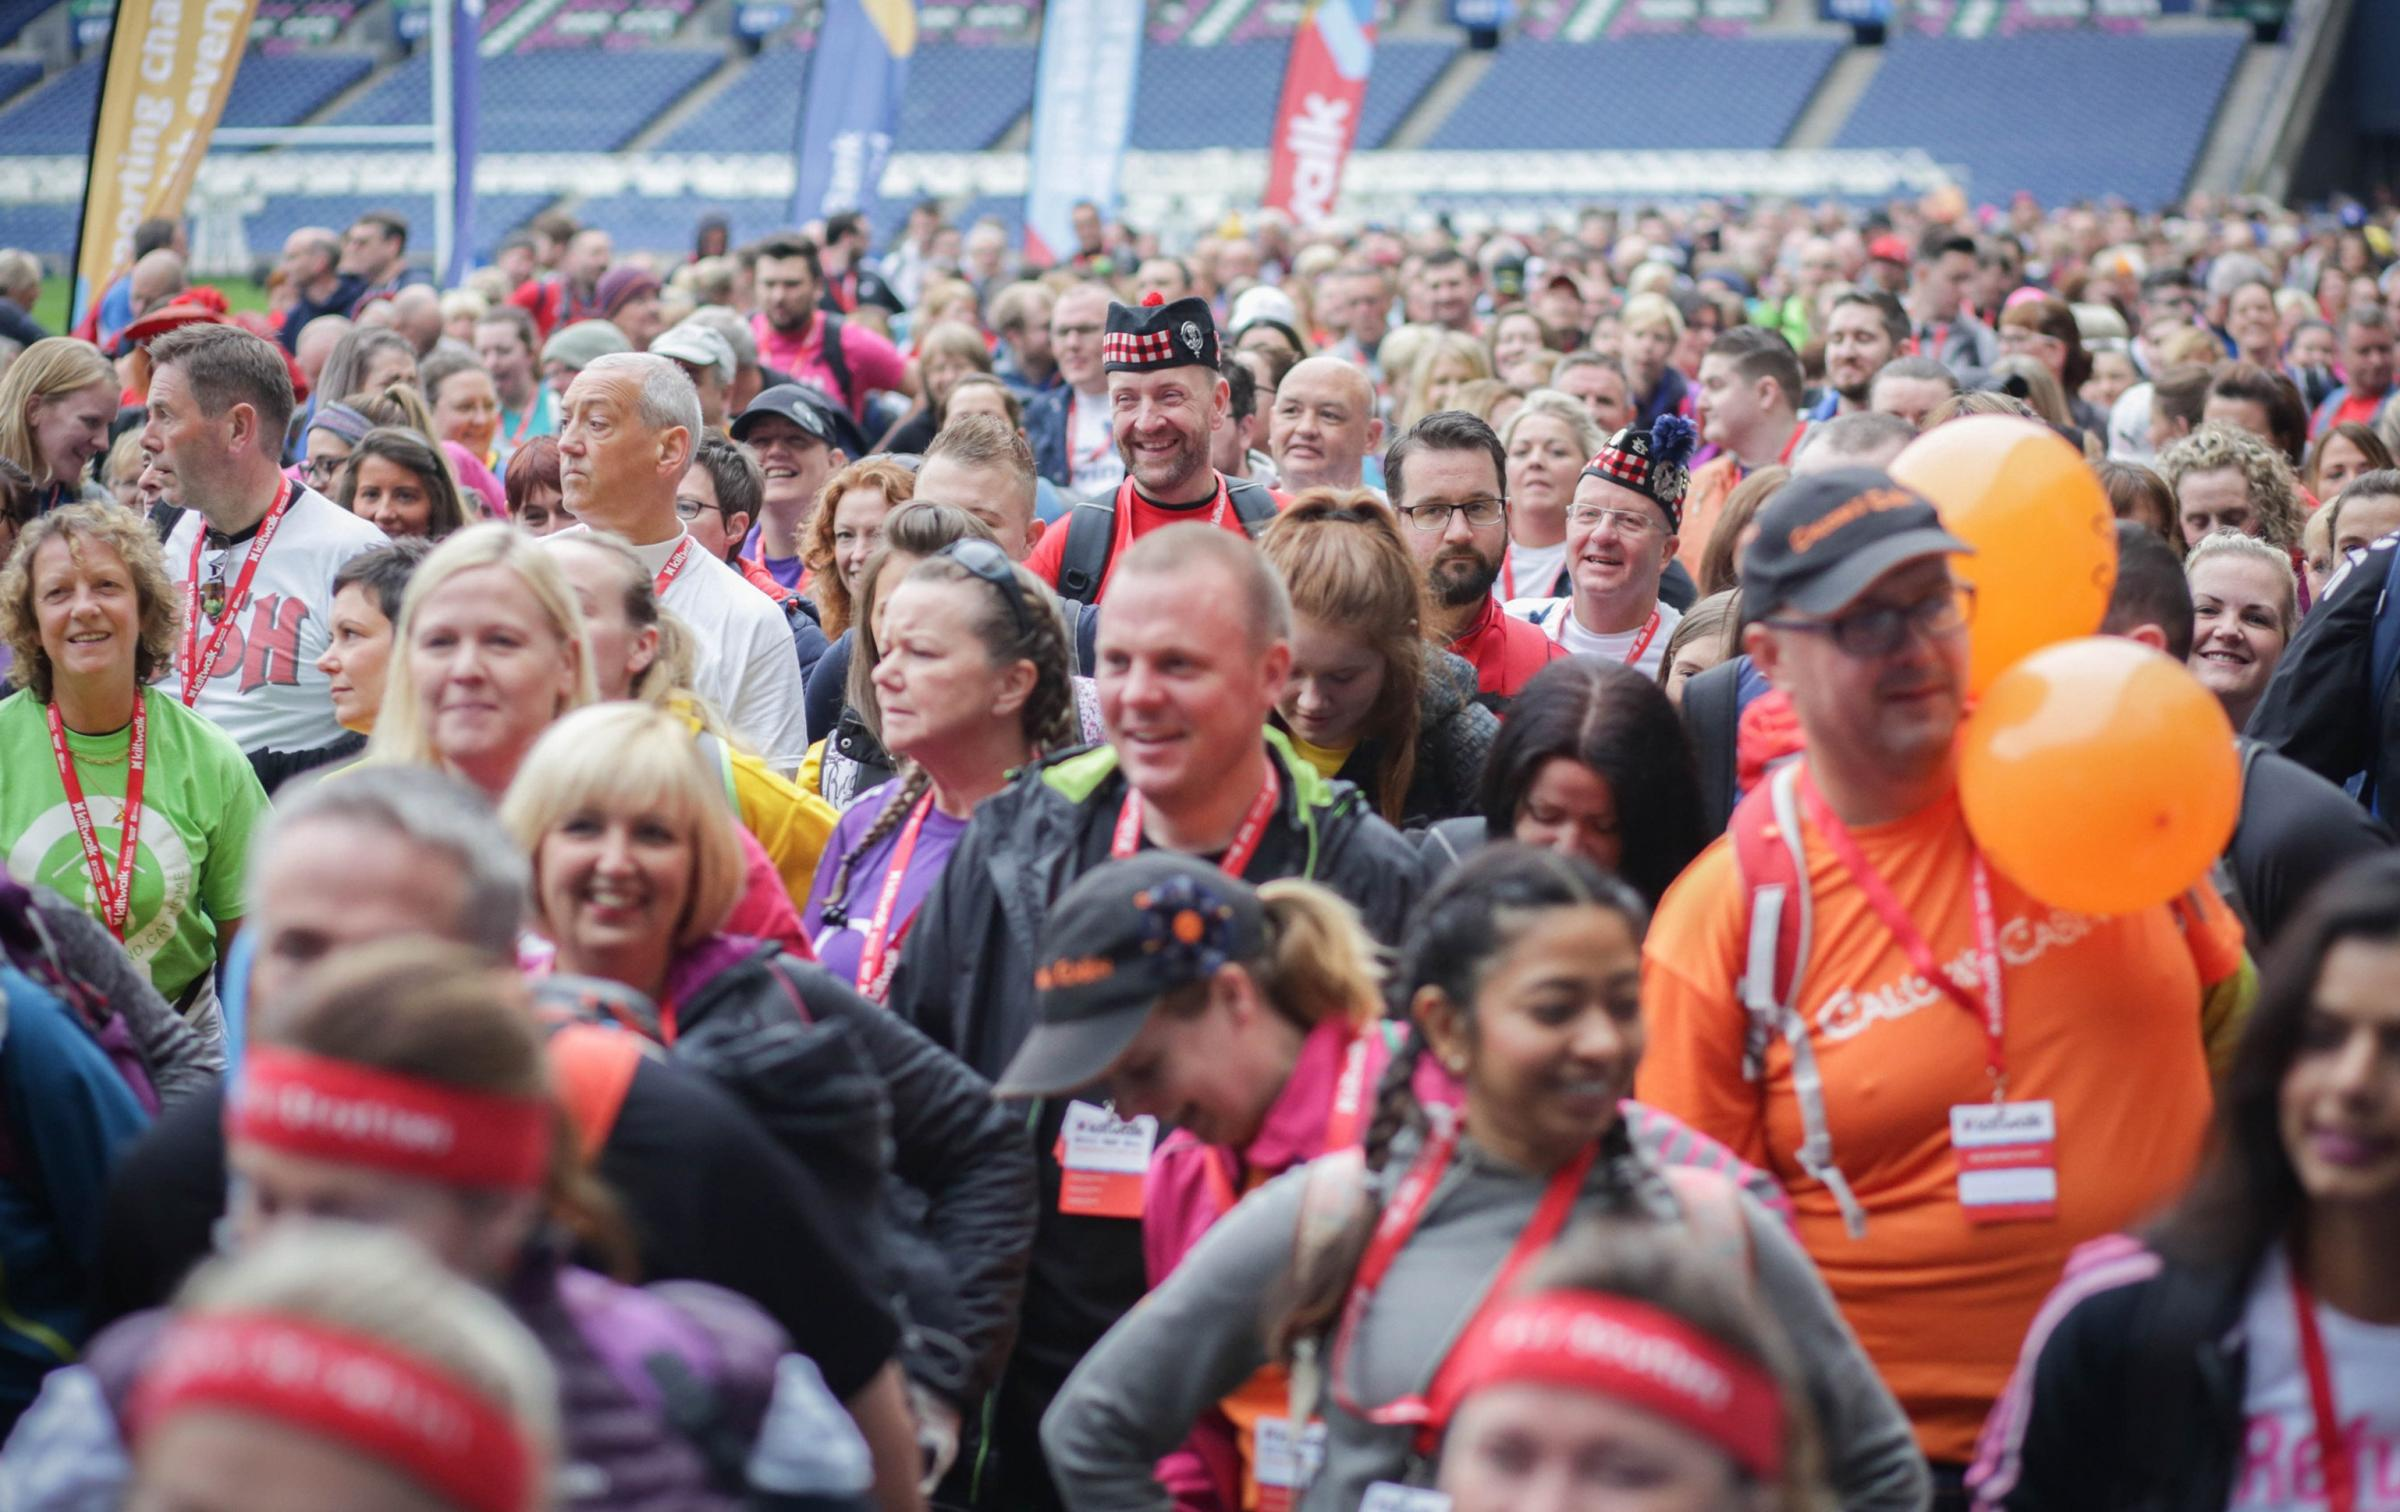 Some 14,000 fundraisers participated in the four Royal Bank of Scotland Kiltwalks in Glasgow, Aberdeen, Dundee and Edinburgh